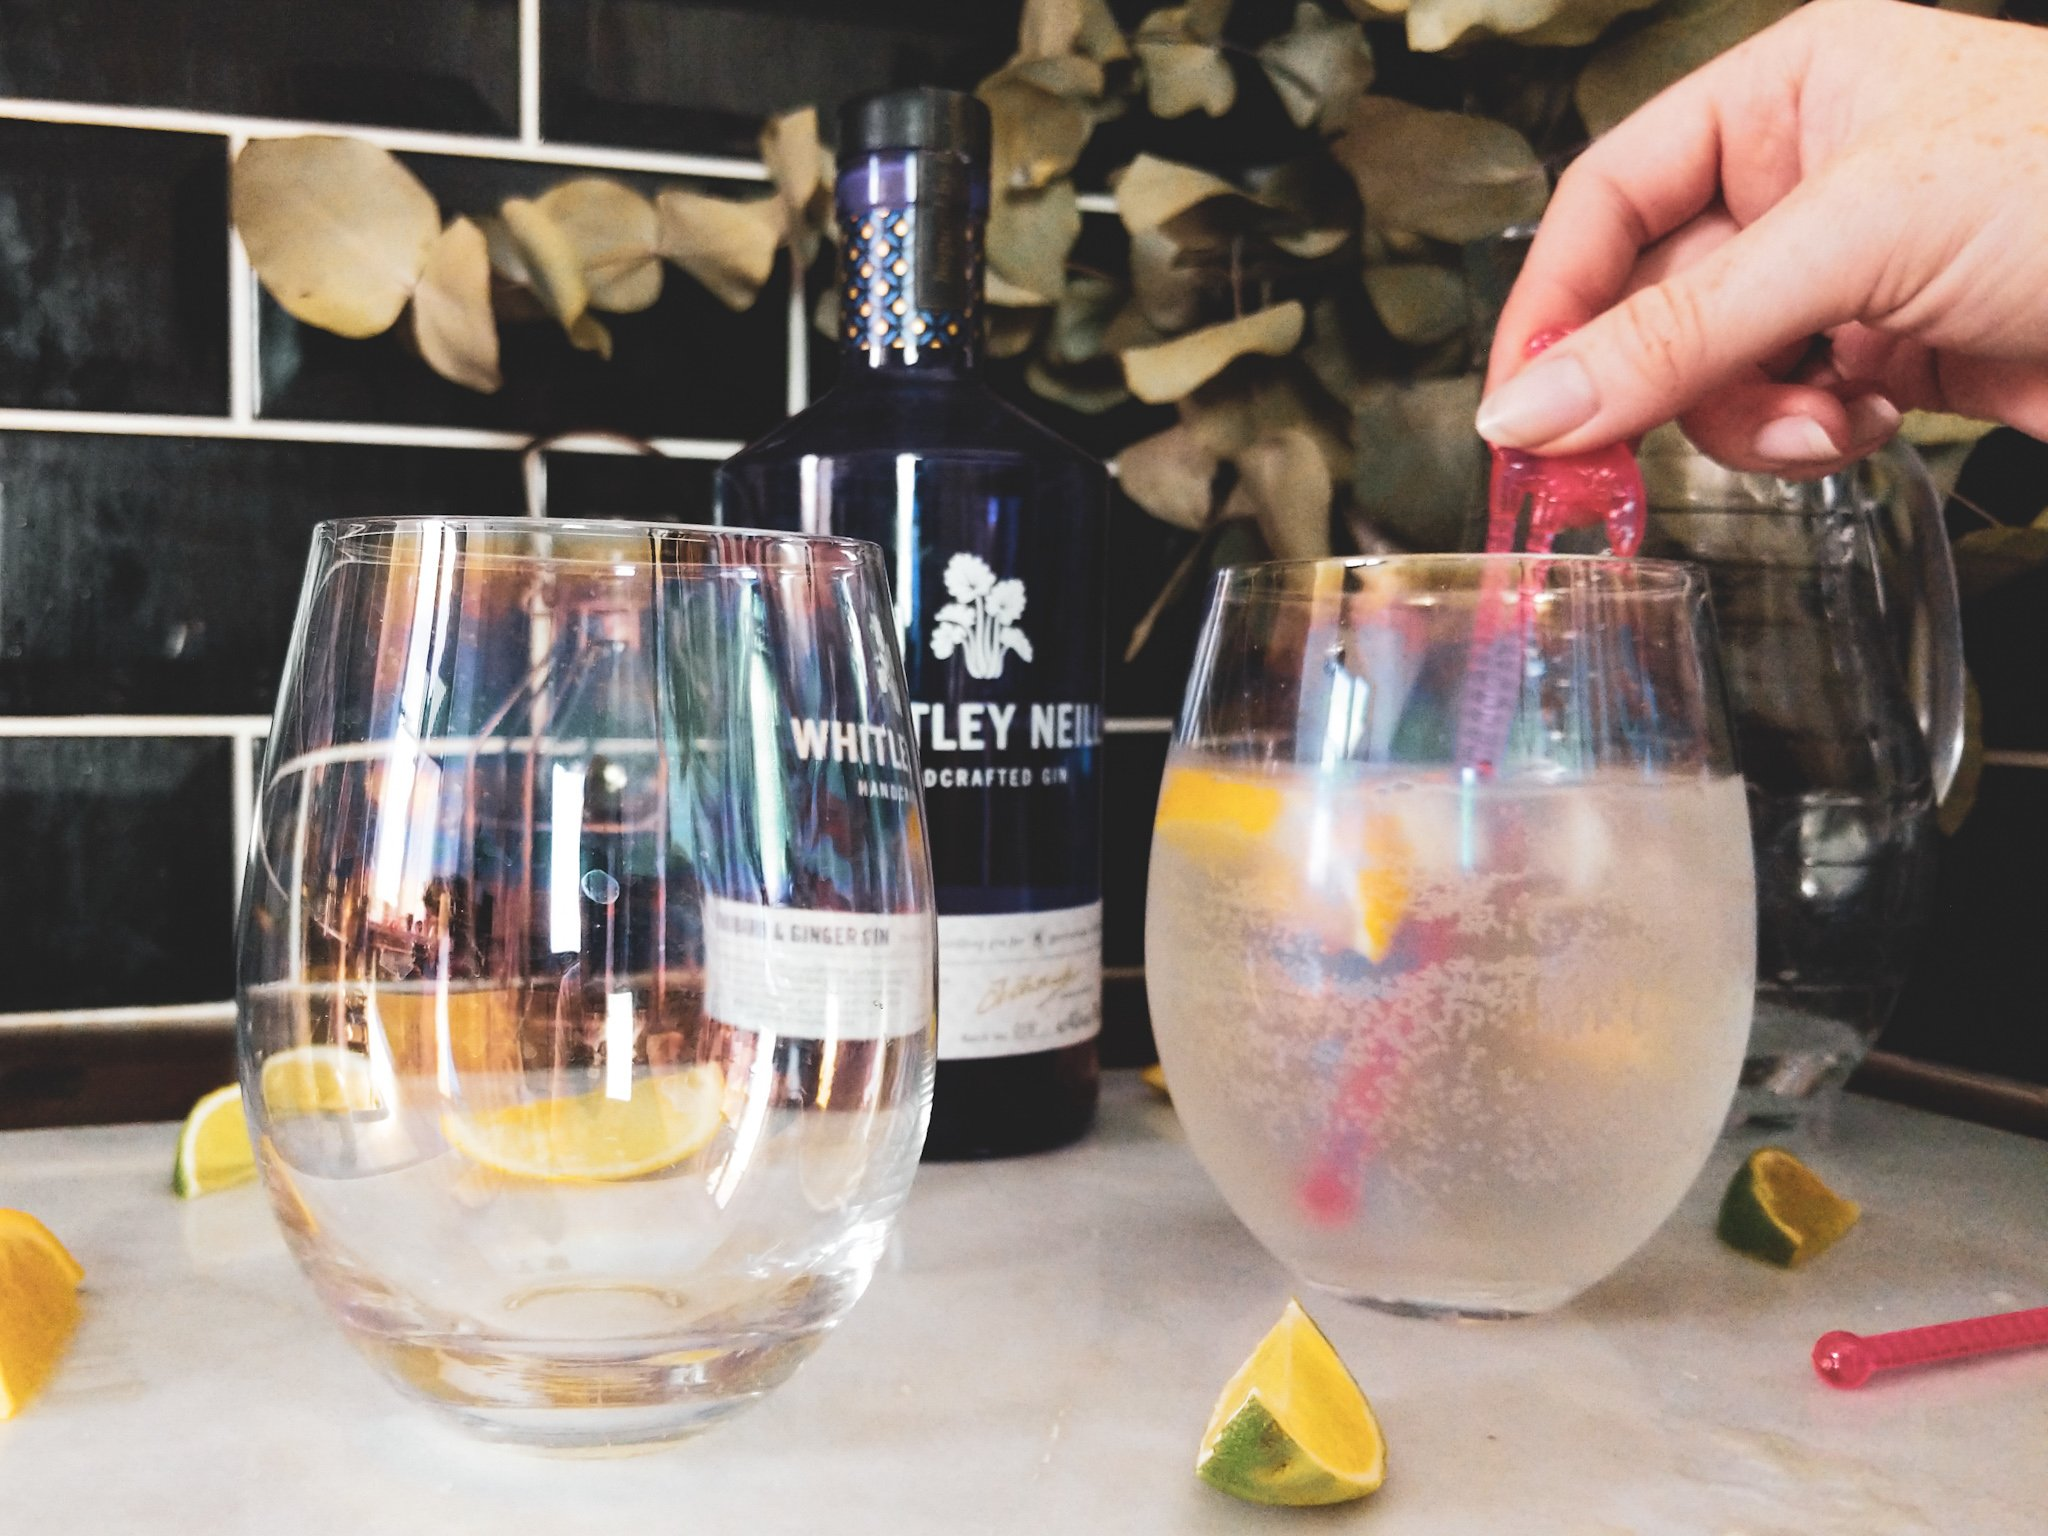 HOW TO MAKE GIN FOR TWO WITH WHITLEY GIN